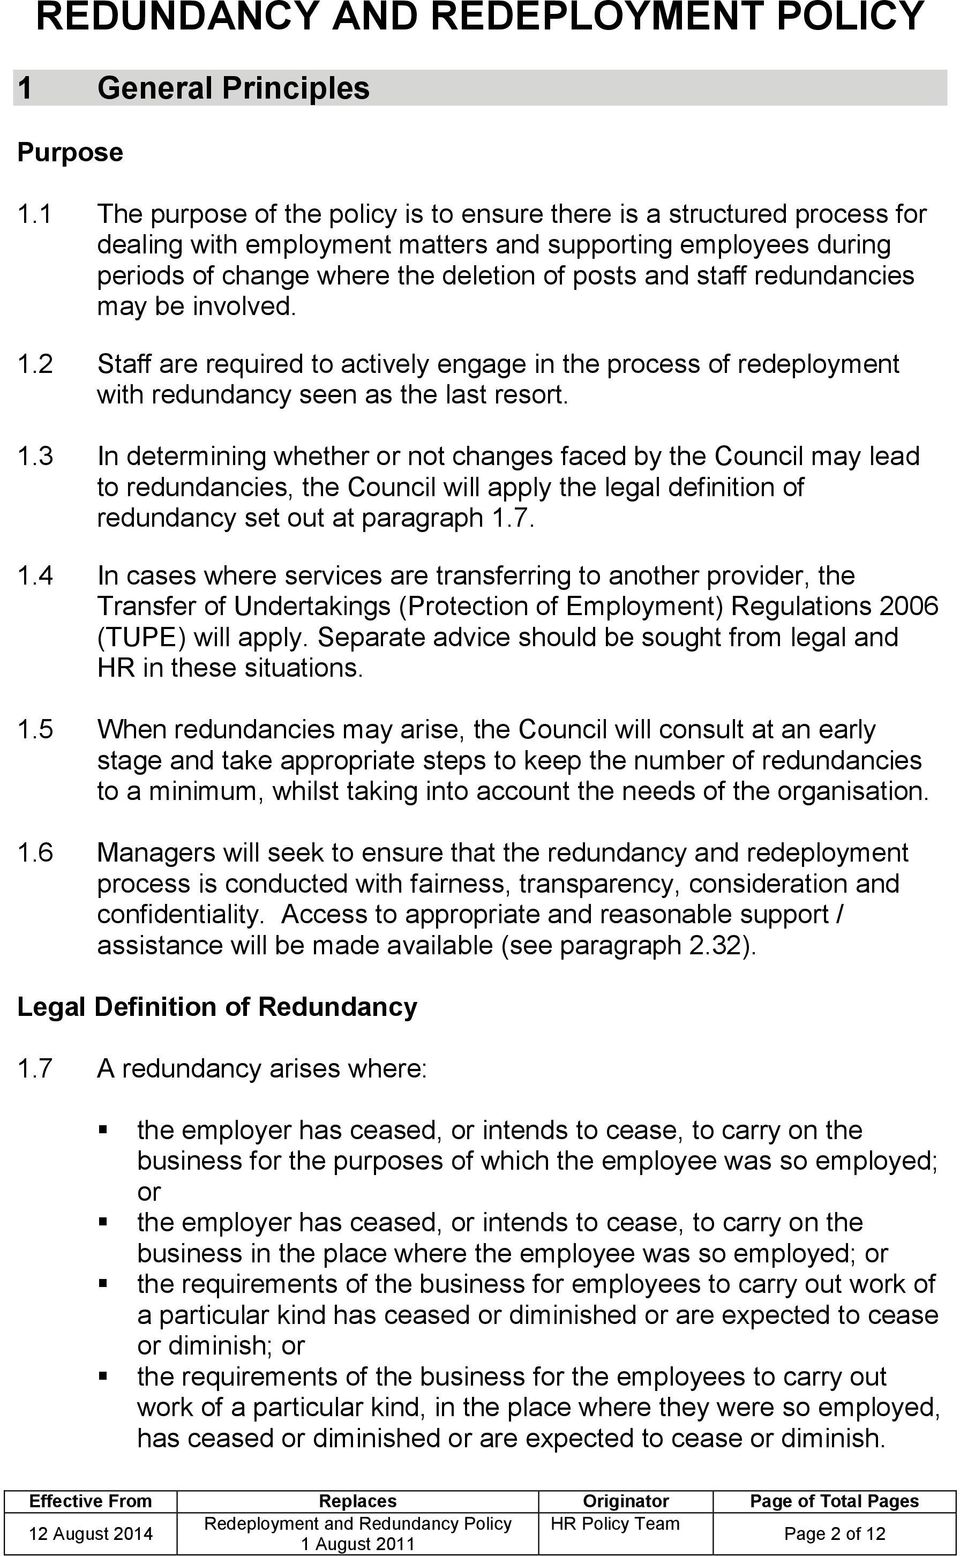 redundancies may be involved. 1.2 Staff are required to actively engage in the process of redeployment with redundancy seen as the last resort. 1.3 In determining whether or not changes faced by the Council may lead to redundancies, the Council will apply the legal definition of redundancy set out at paragraph 1.